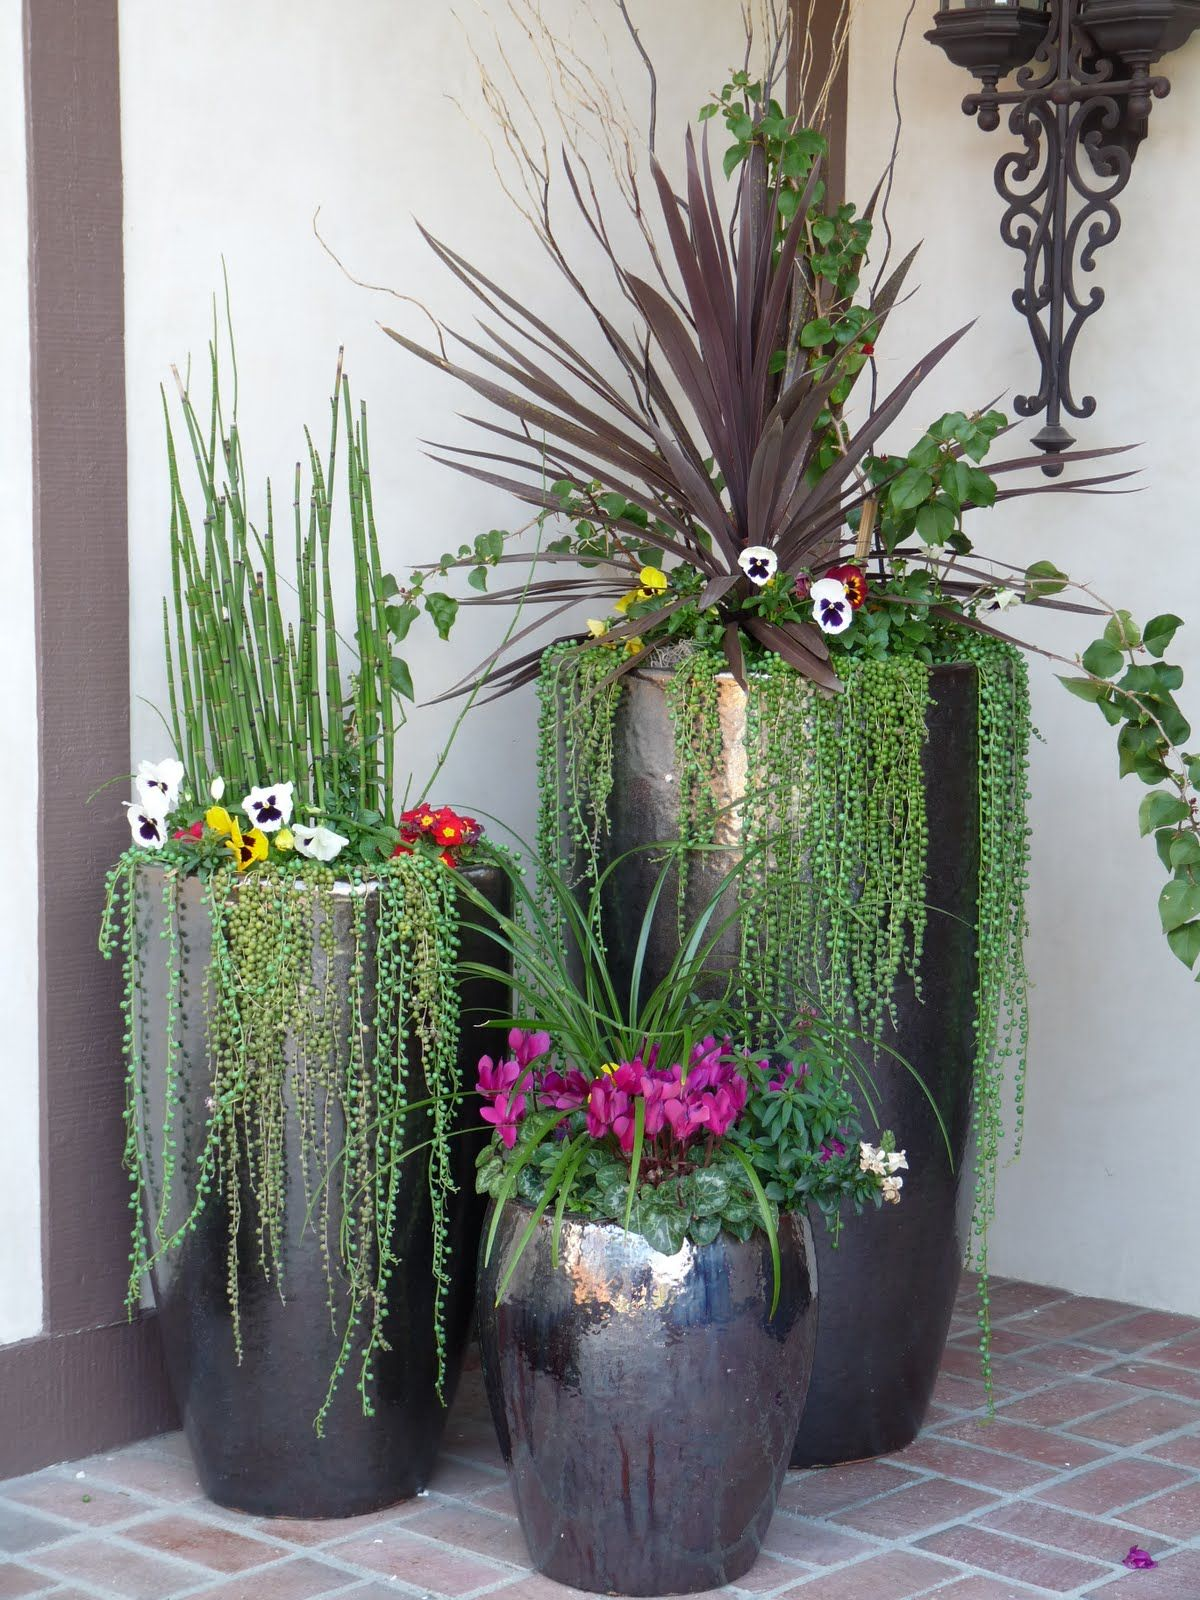 Home Decor Plants Plants Will Adorn Our Home Potted Plants Outdoor Ideas